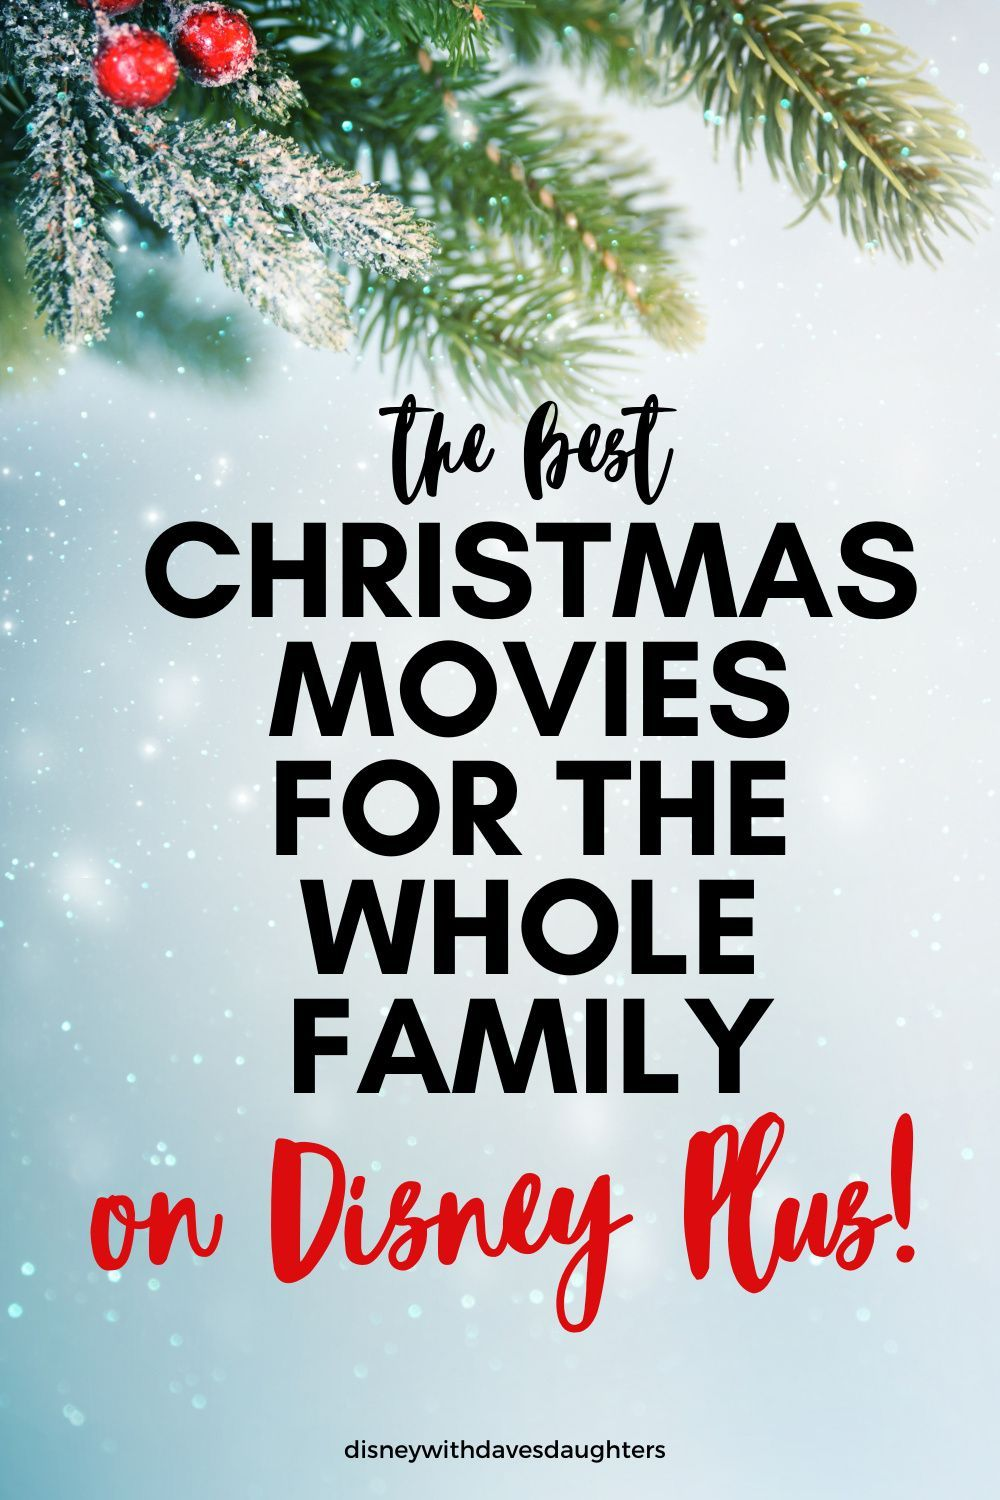 The Best Disney Christmas Movies On Disney Plus For Families Kids Grown Ups Disney With D In 2020 Disney Christmas Movies Christmas Movies Best Christmas Movies